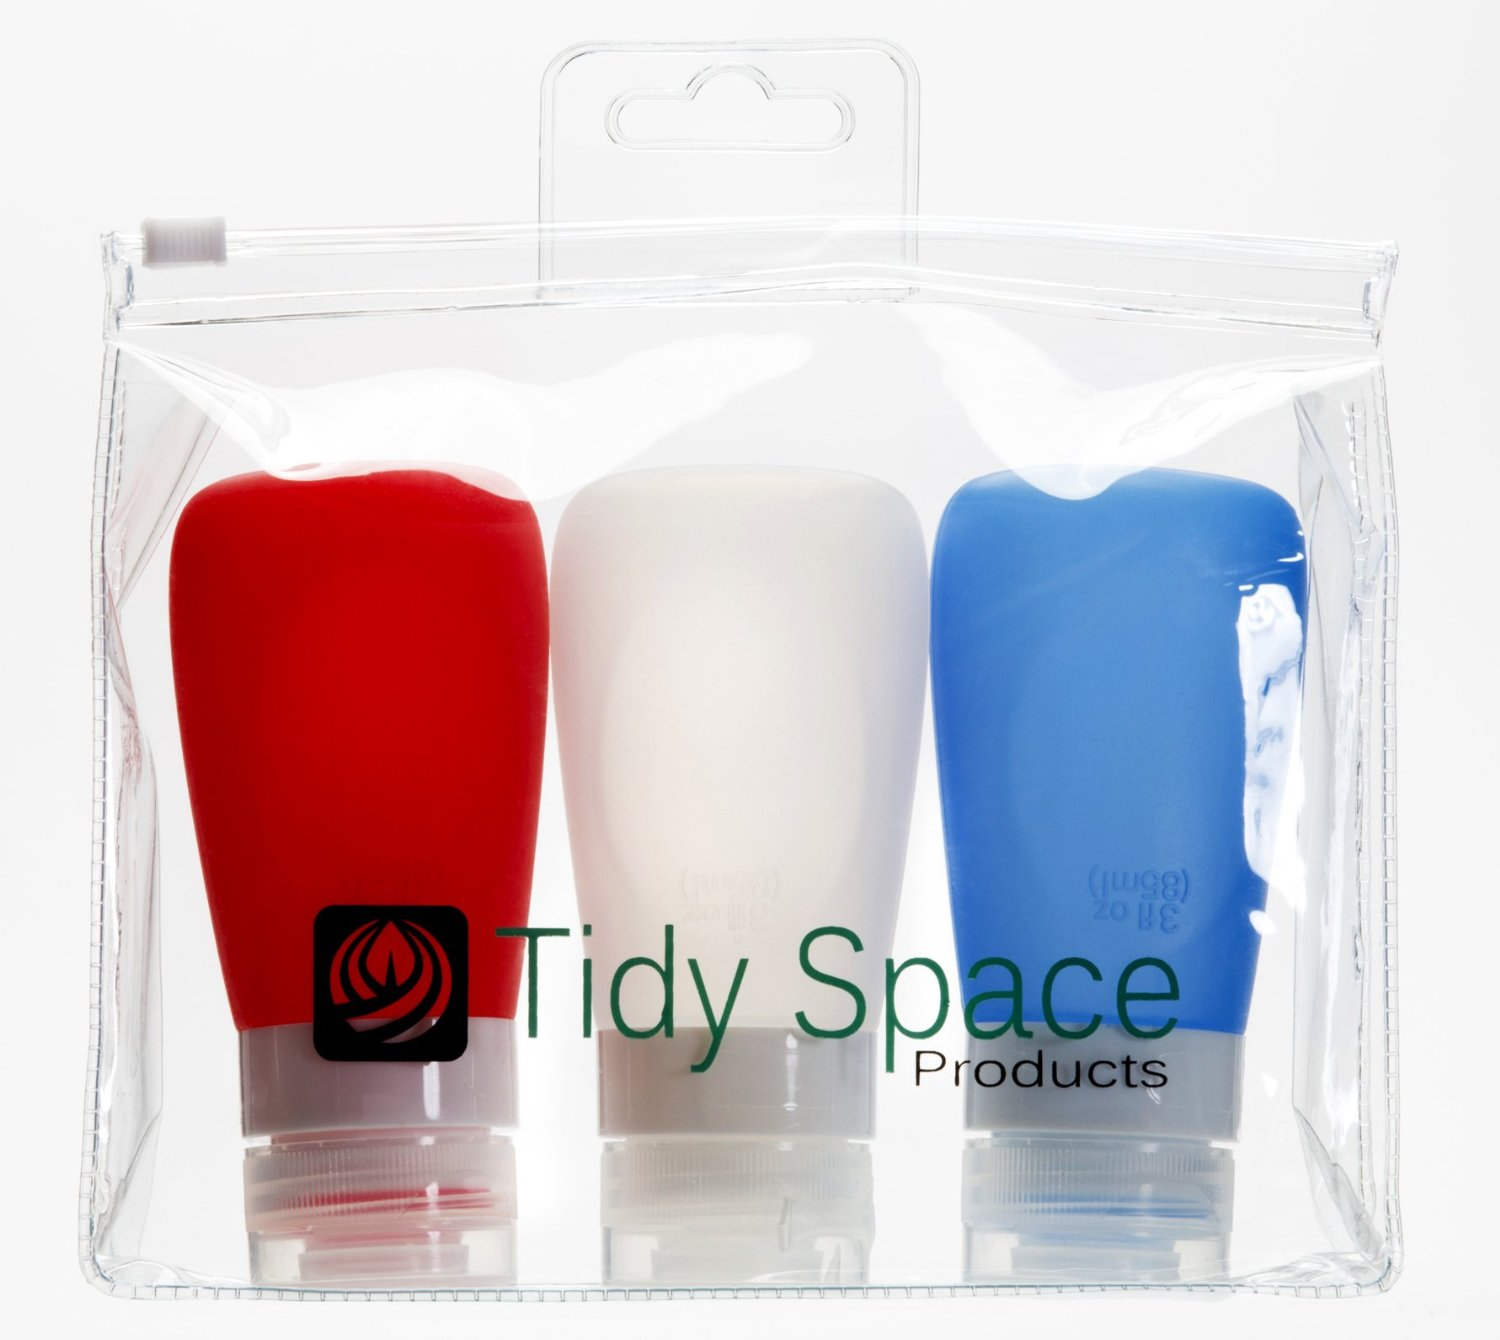 Tidy Space's 3 oz. air travel bottles. ($18 for pack of 3)